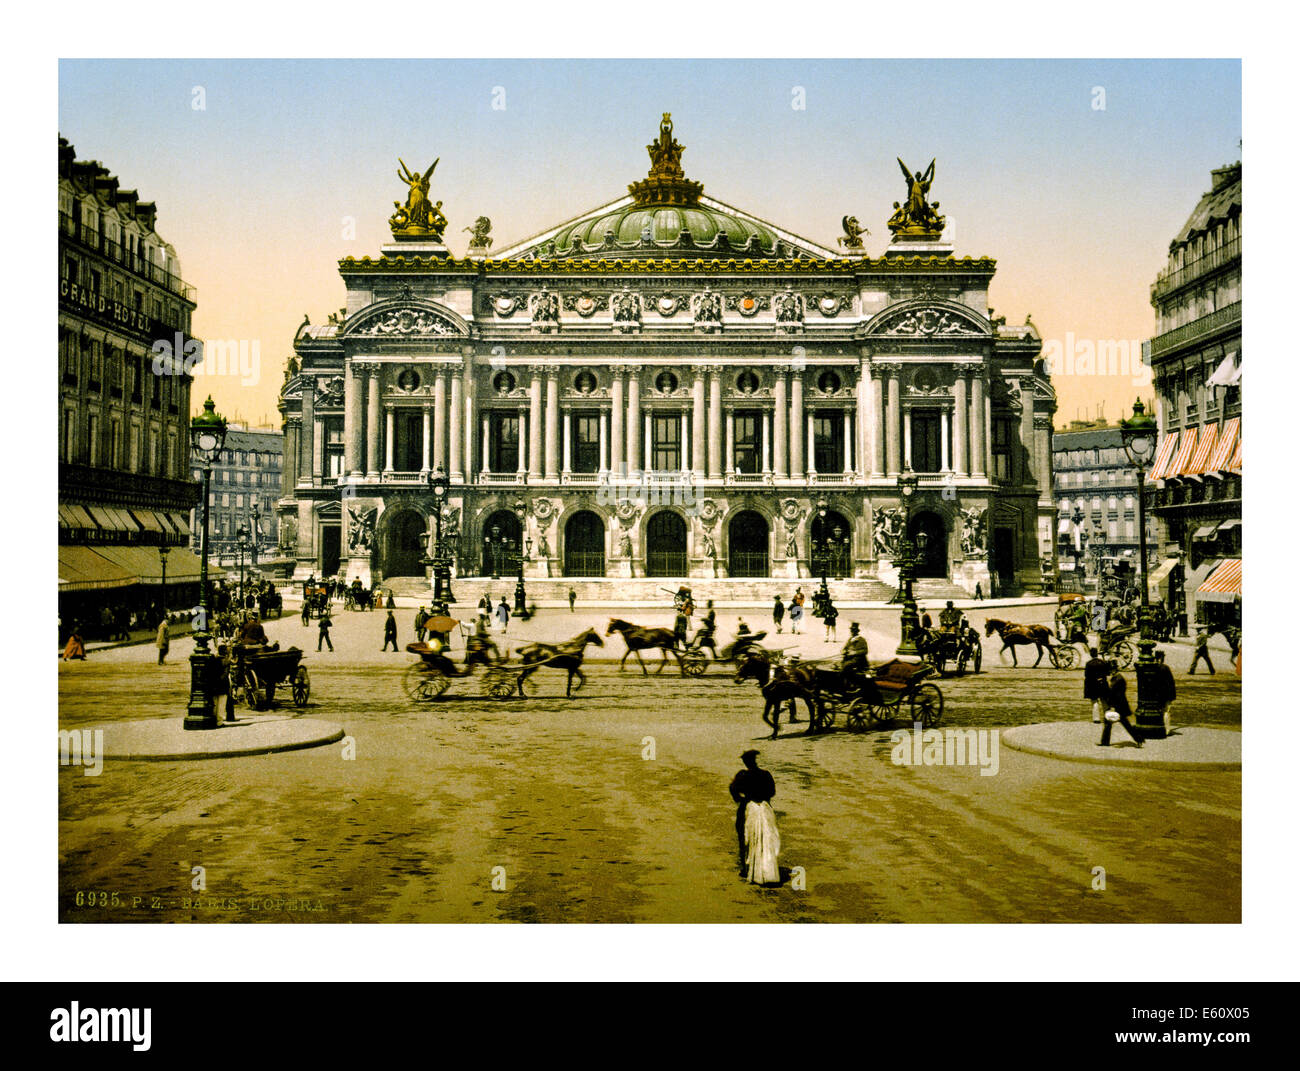 900's Paris Opera hand coloured B&W vintage photograph from a postcard - Stock Image